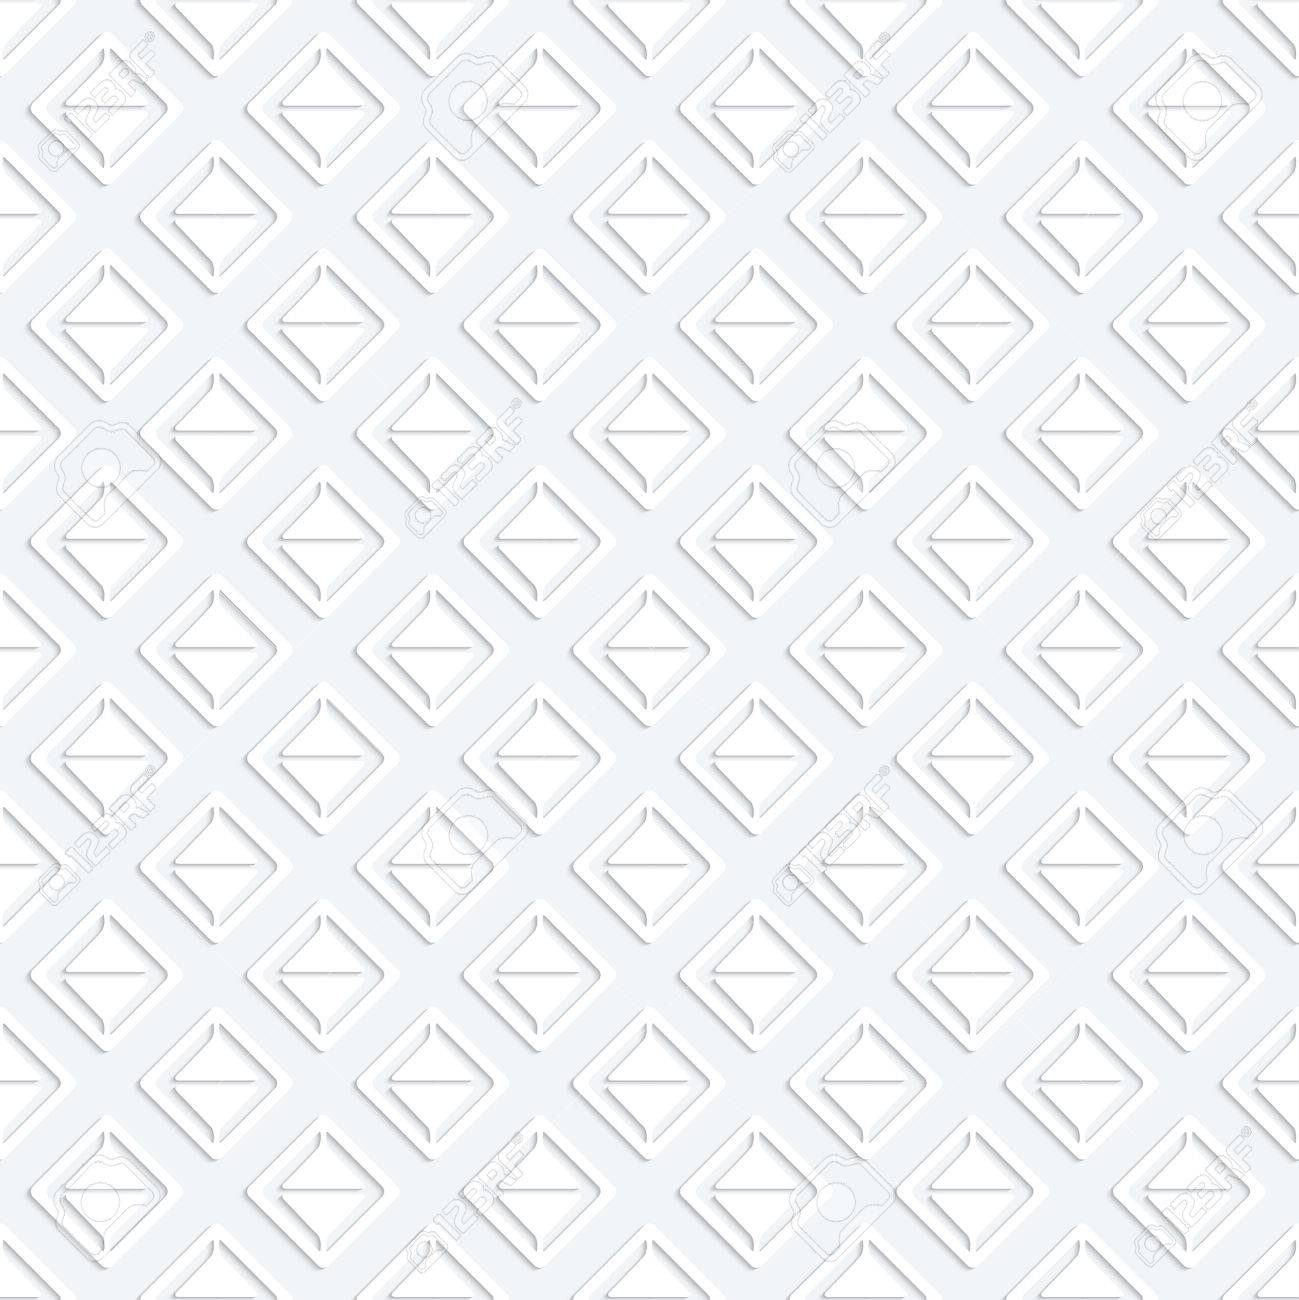 Modern seamless pattern with white geometrici figures separated from each other. Stock Vector - 26613274